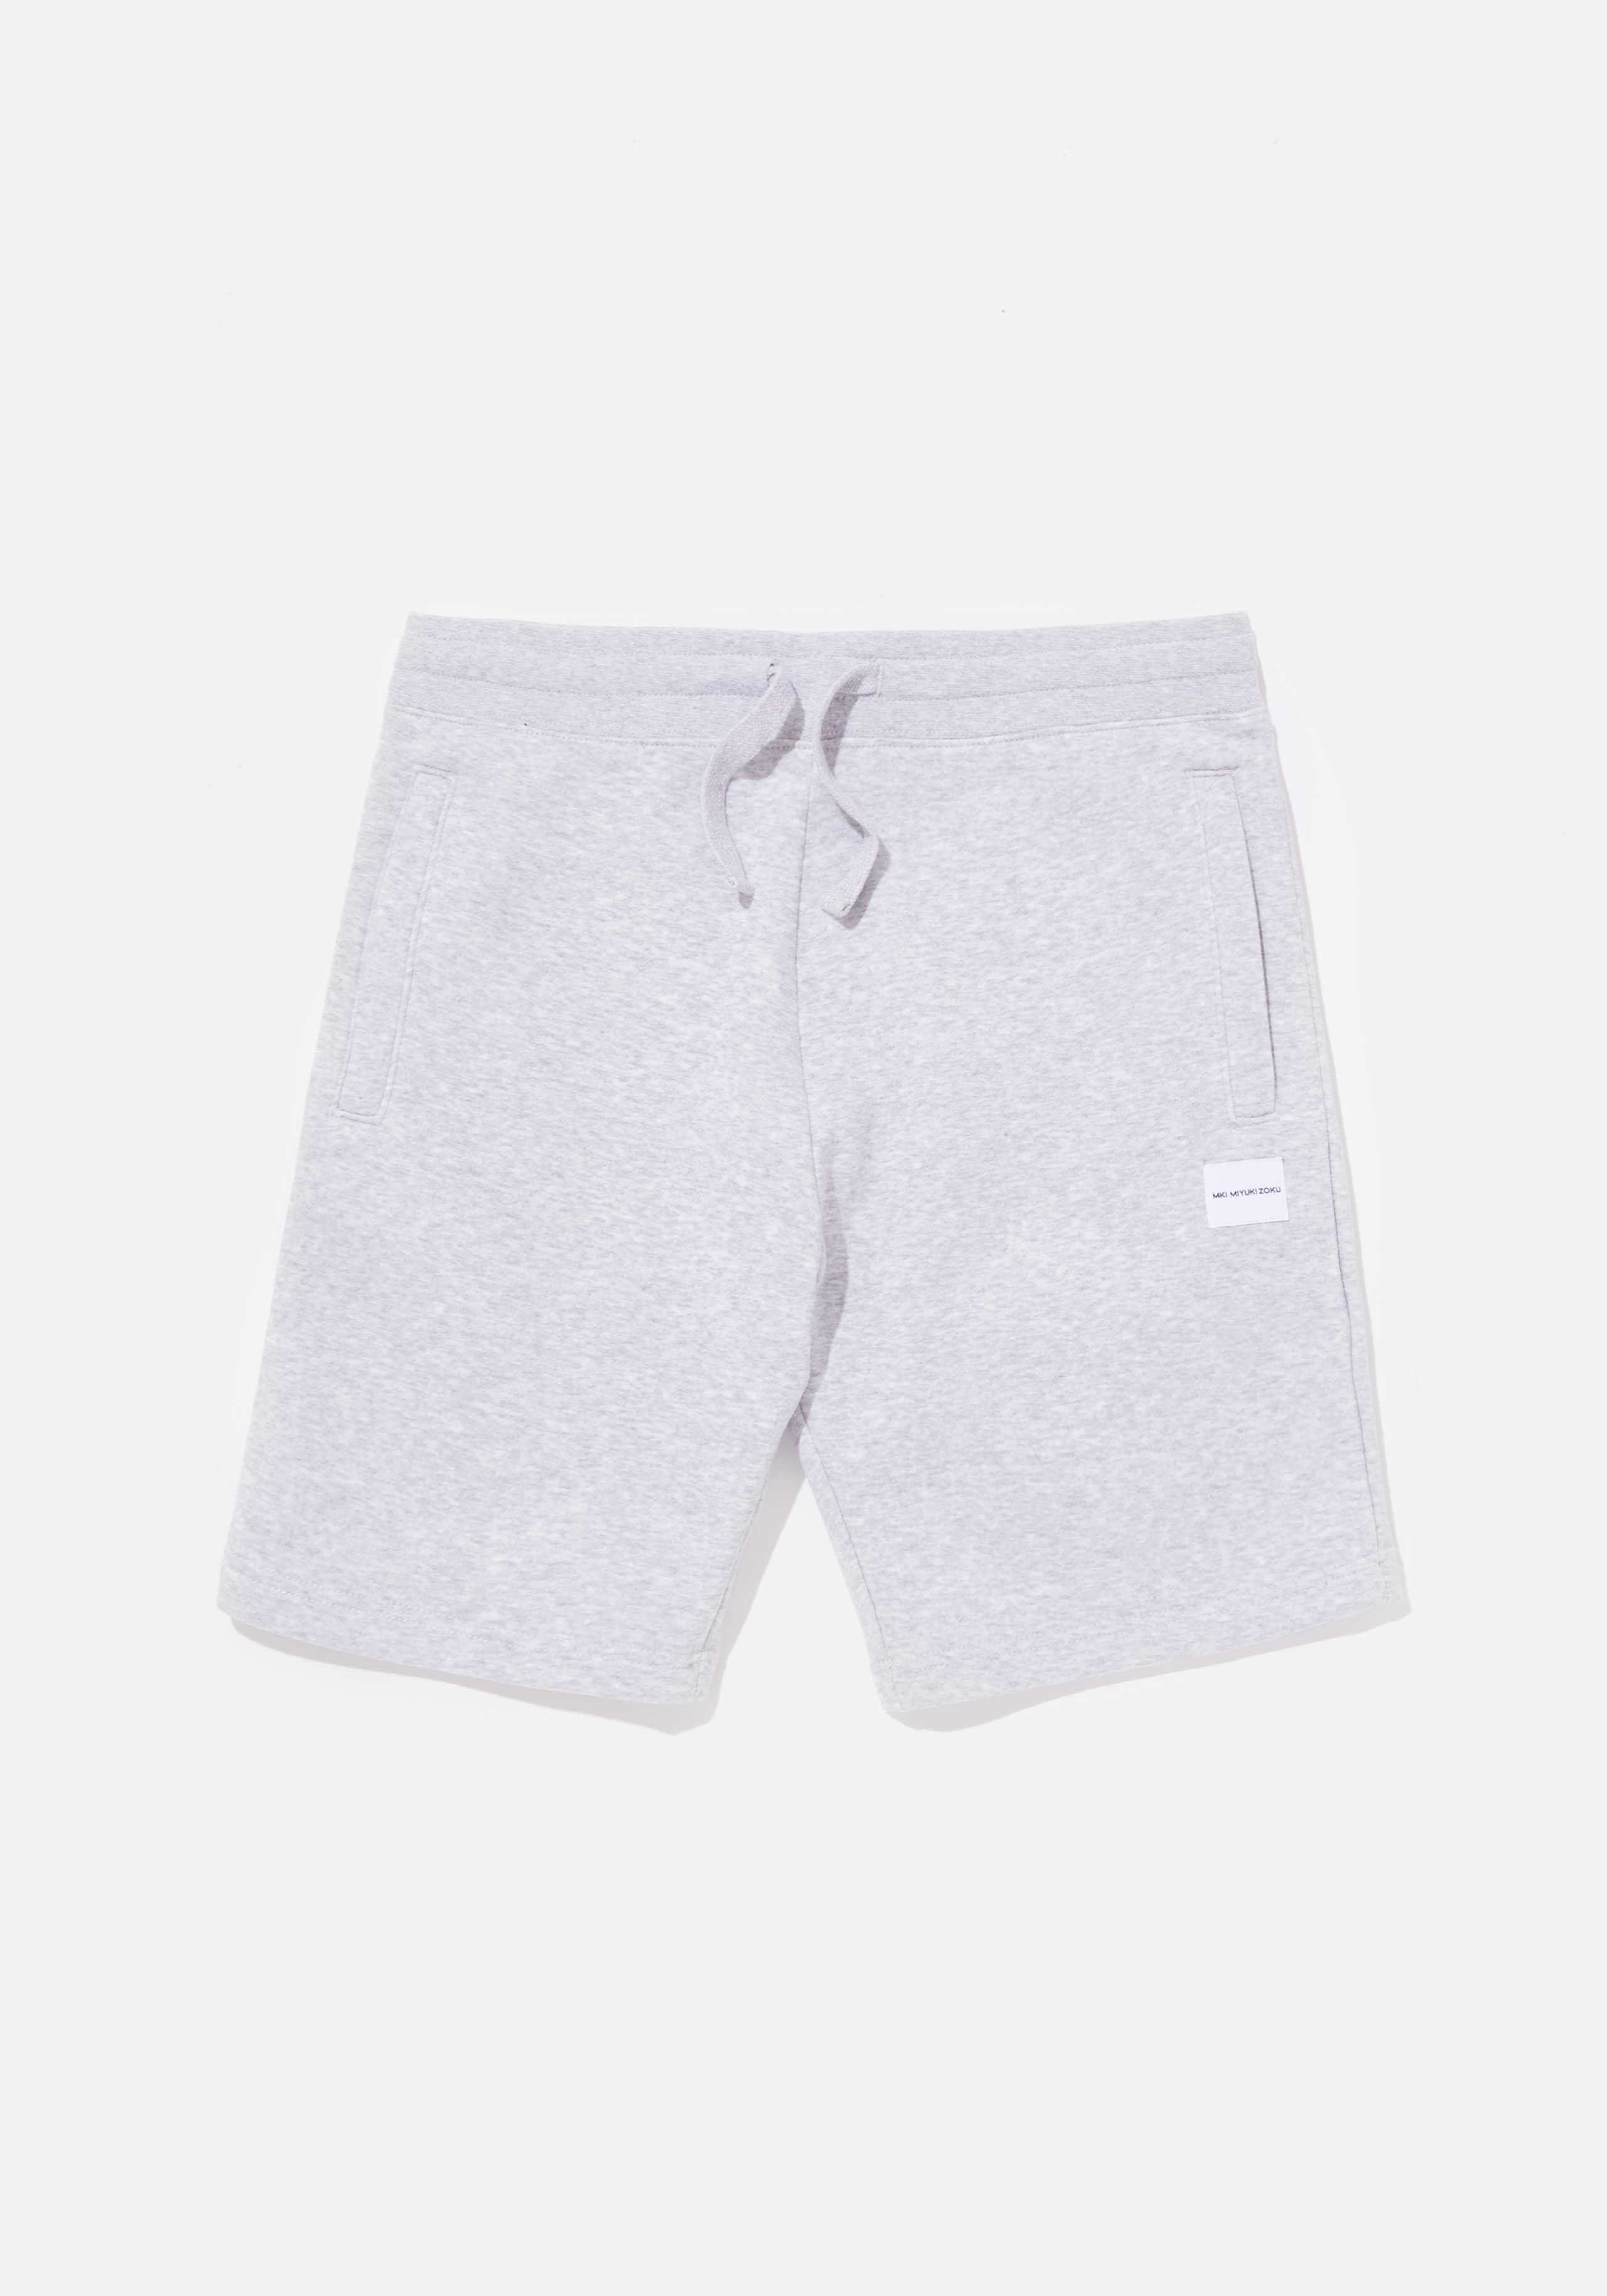 mki relaxed basic shorts 1